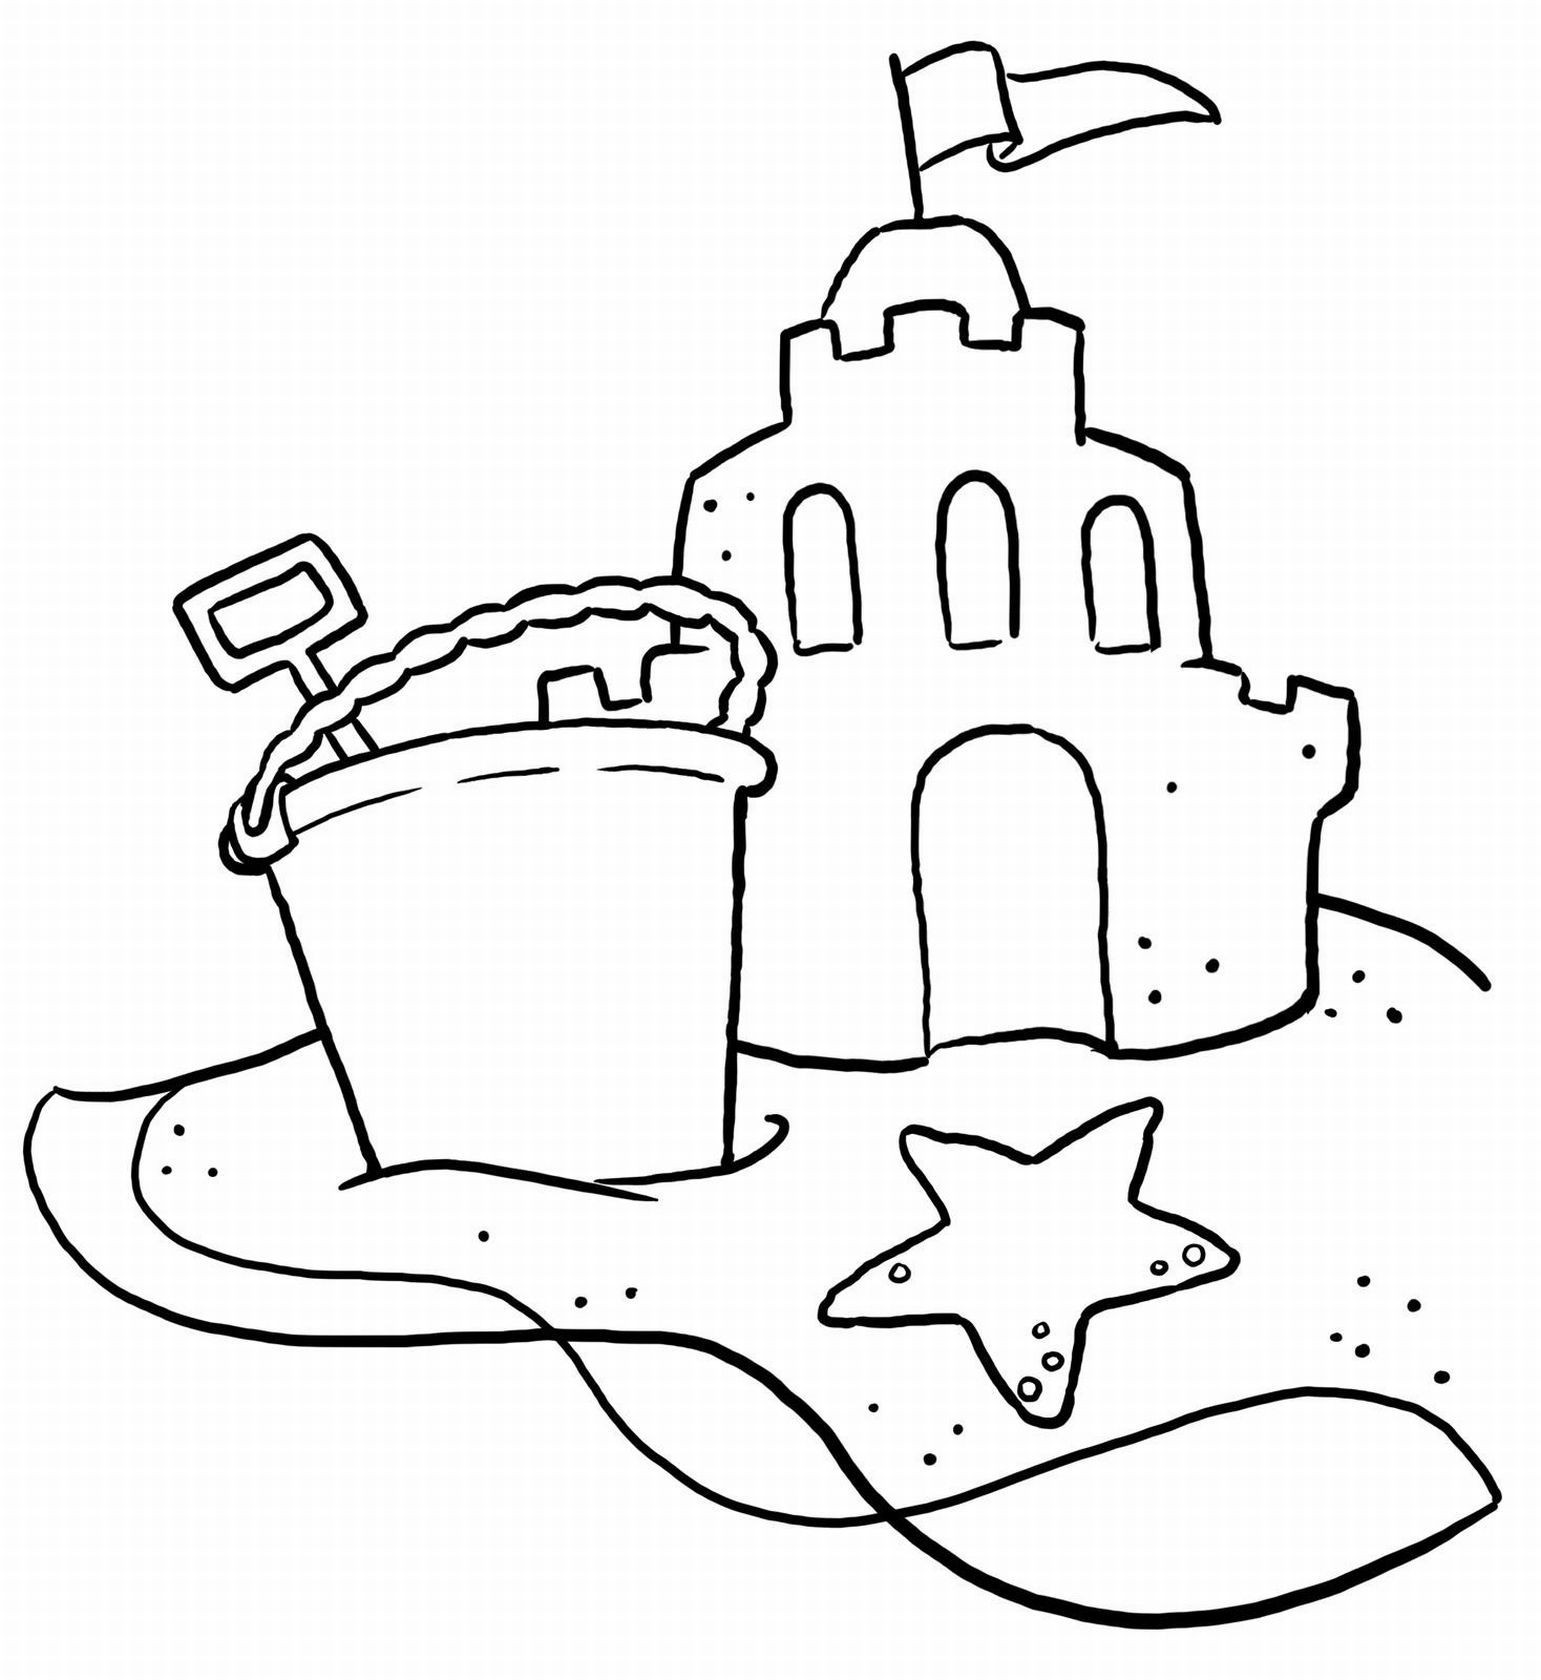 Best ideas about Beach Free Coloring Pages . Save or Pin Beach Coloring Pages 20 Free Printable Sheets to Color Now.